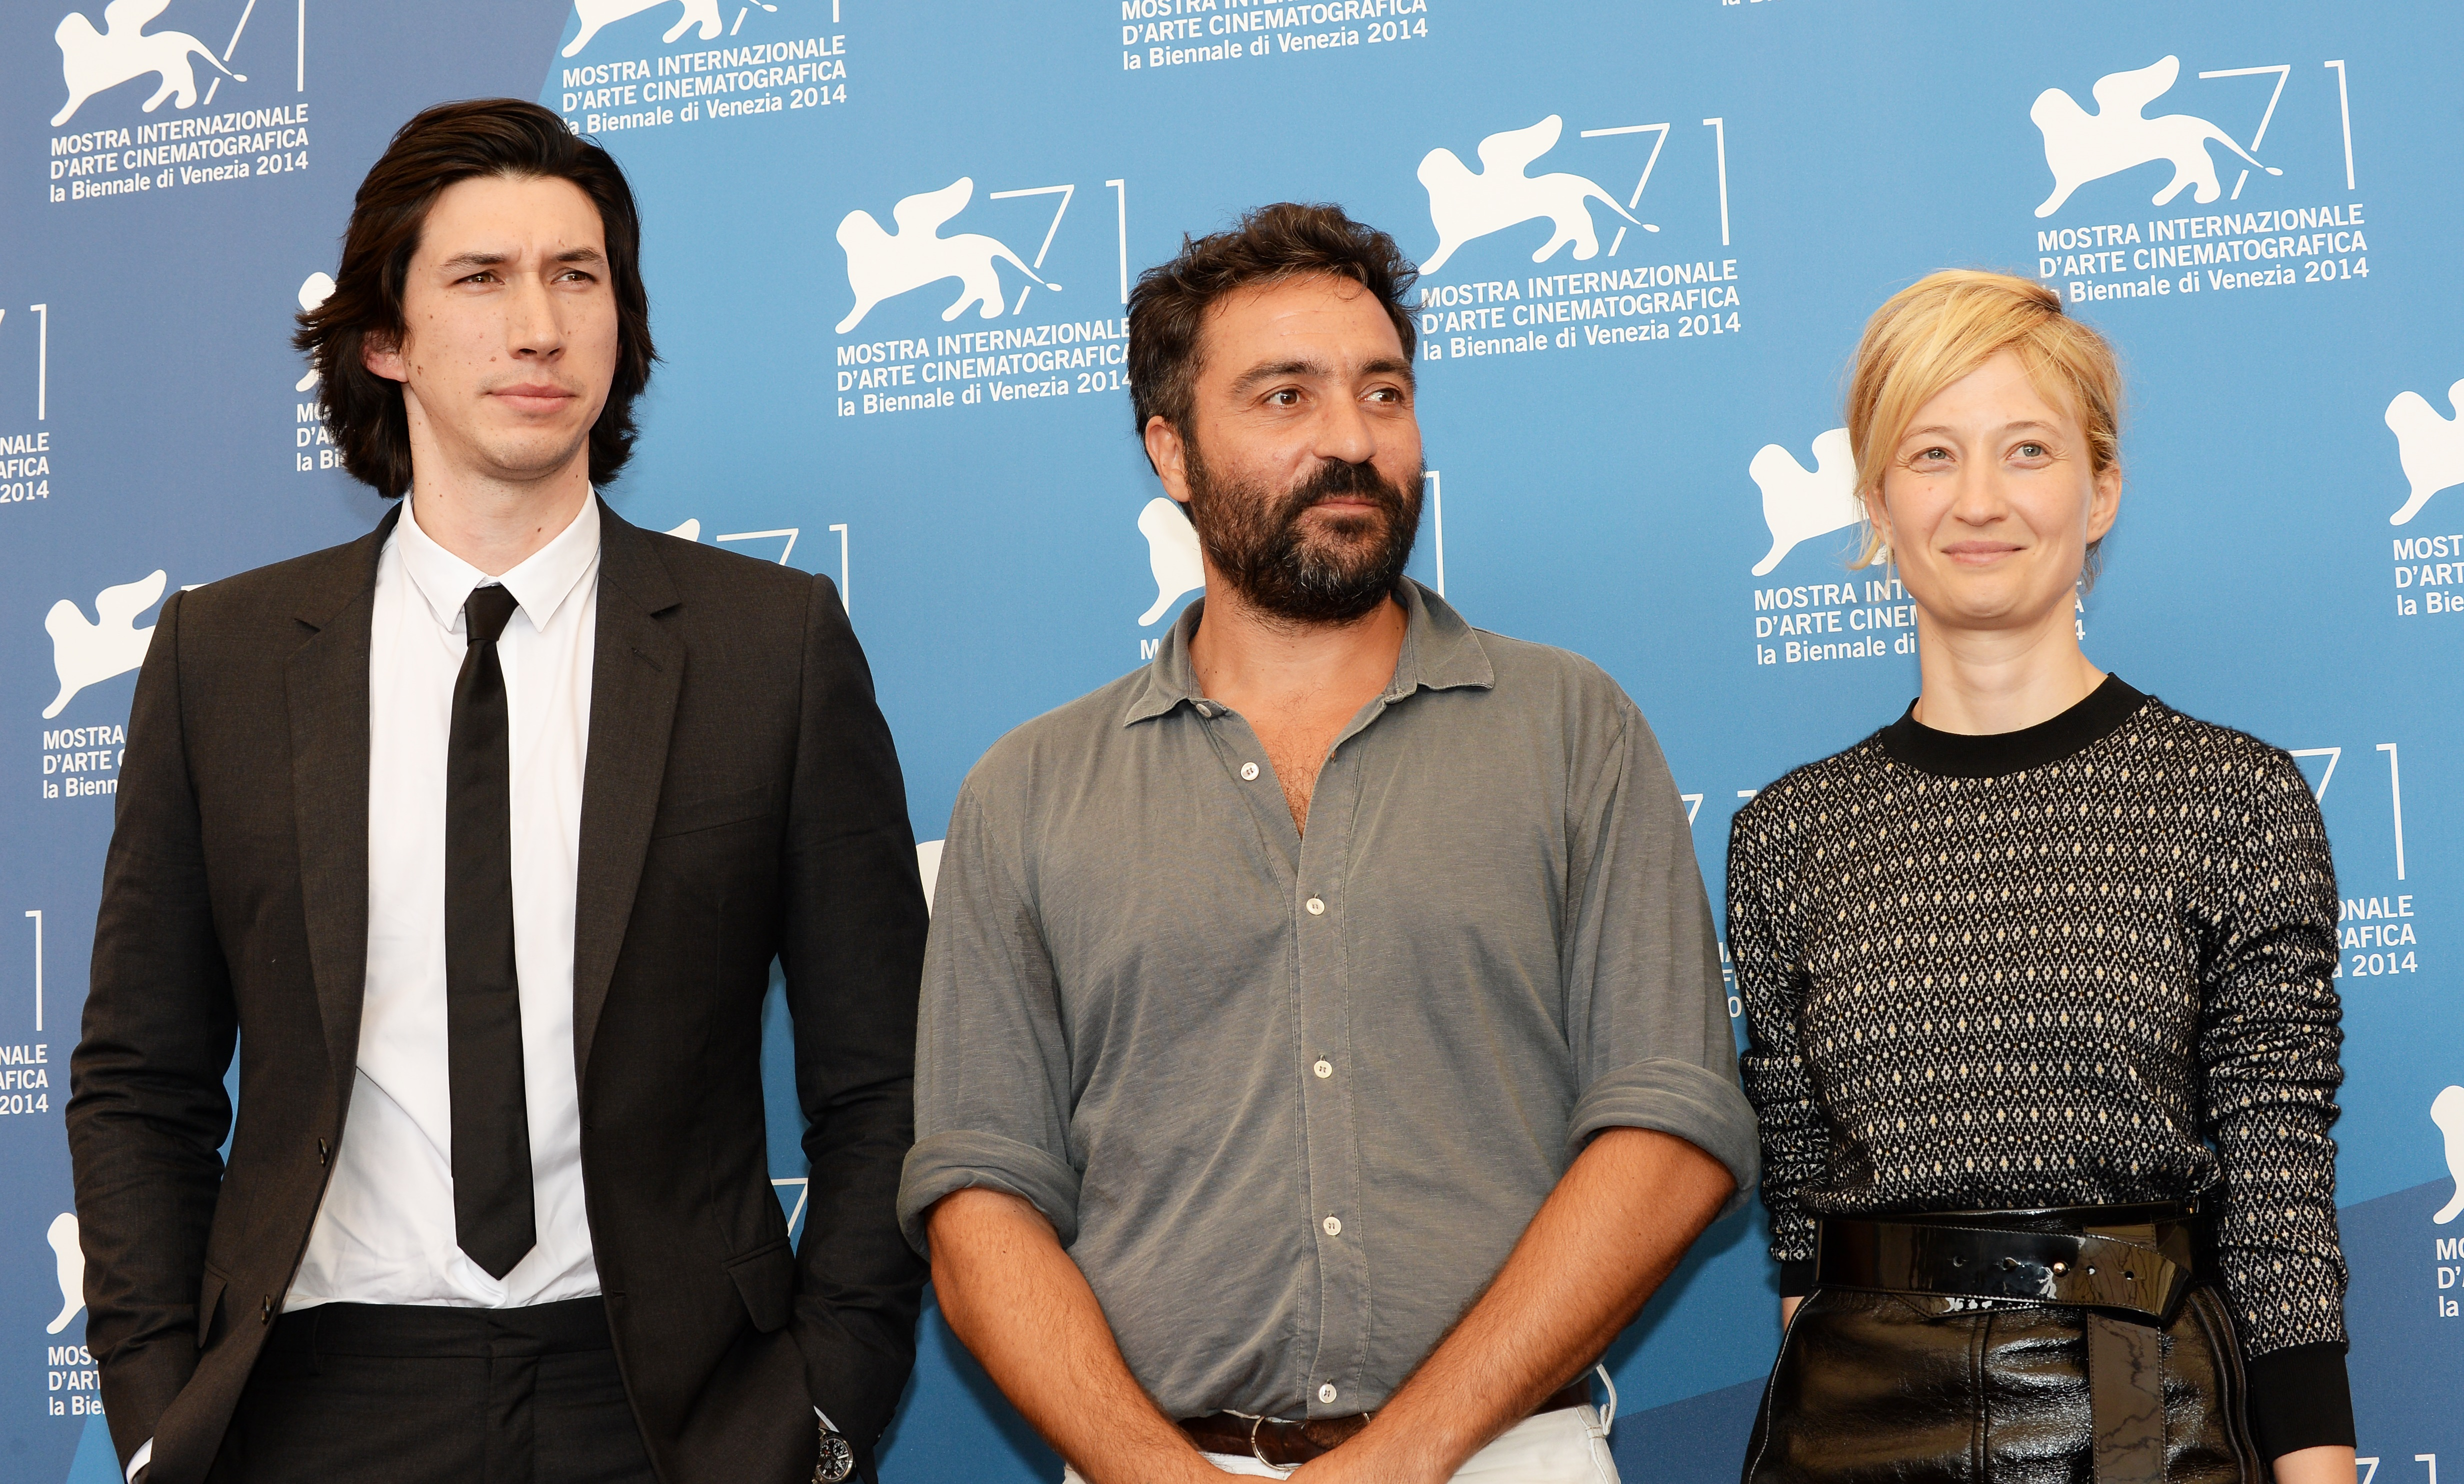 15667-Photocall_-_Hungry_Hearts_-_Film_Delegation_-____la_Biennale_di_Venezia_-_Foto_ASAC__1_